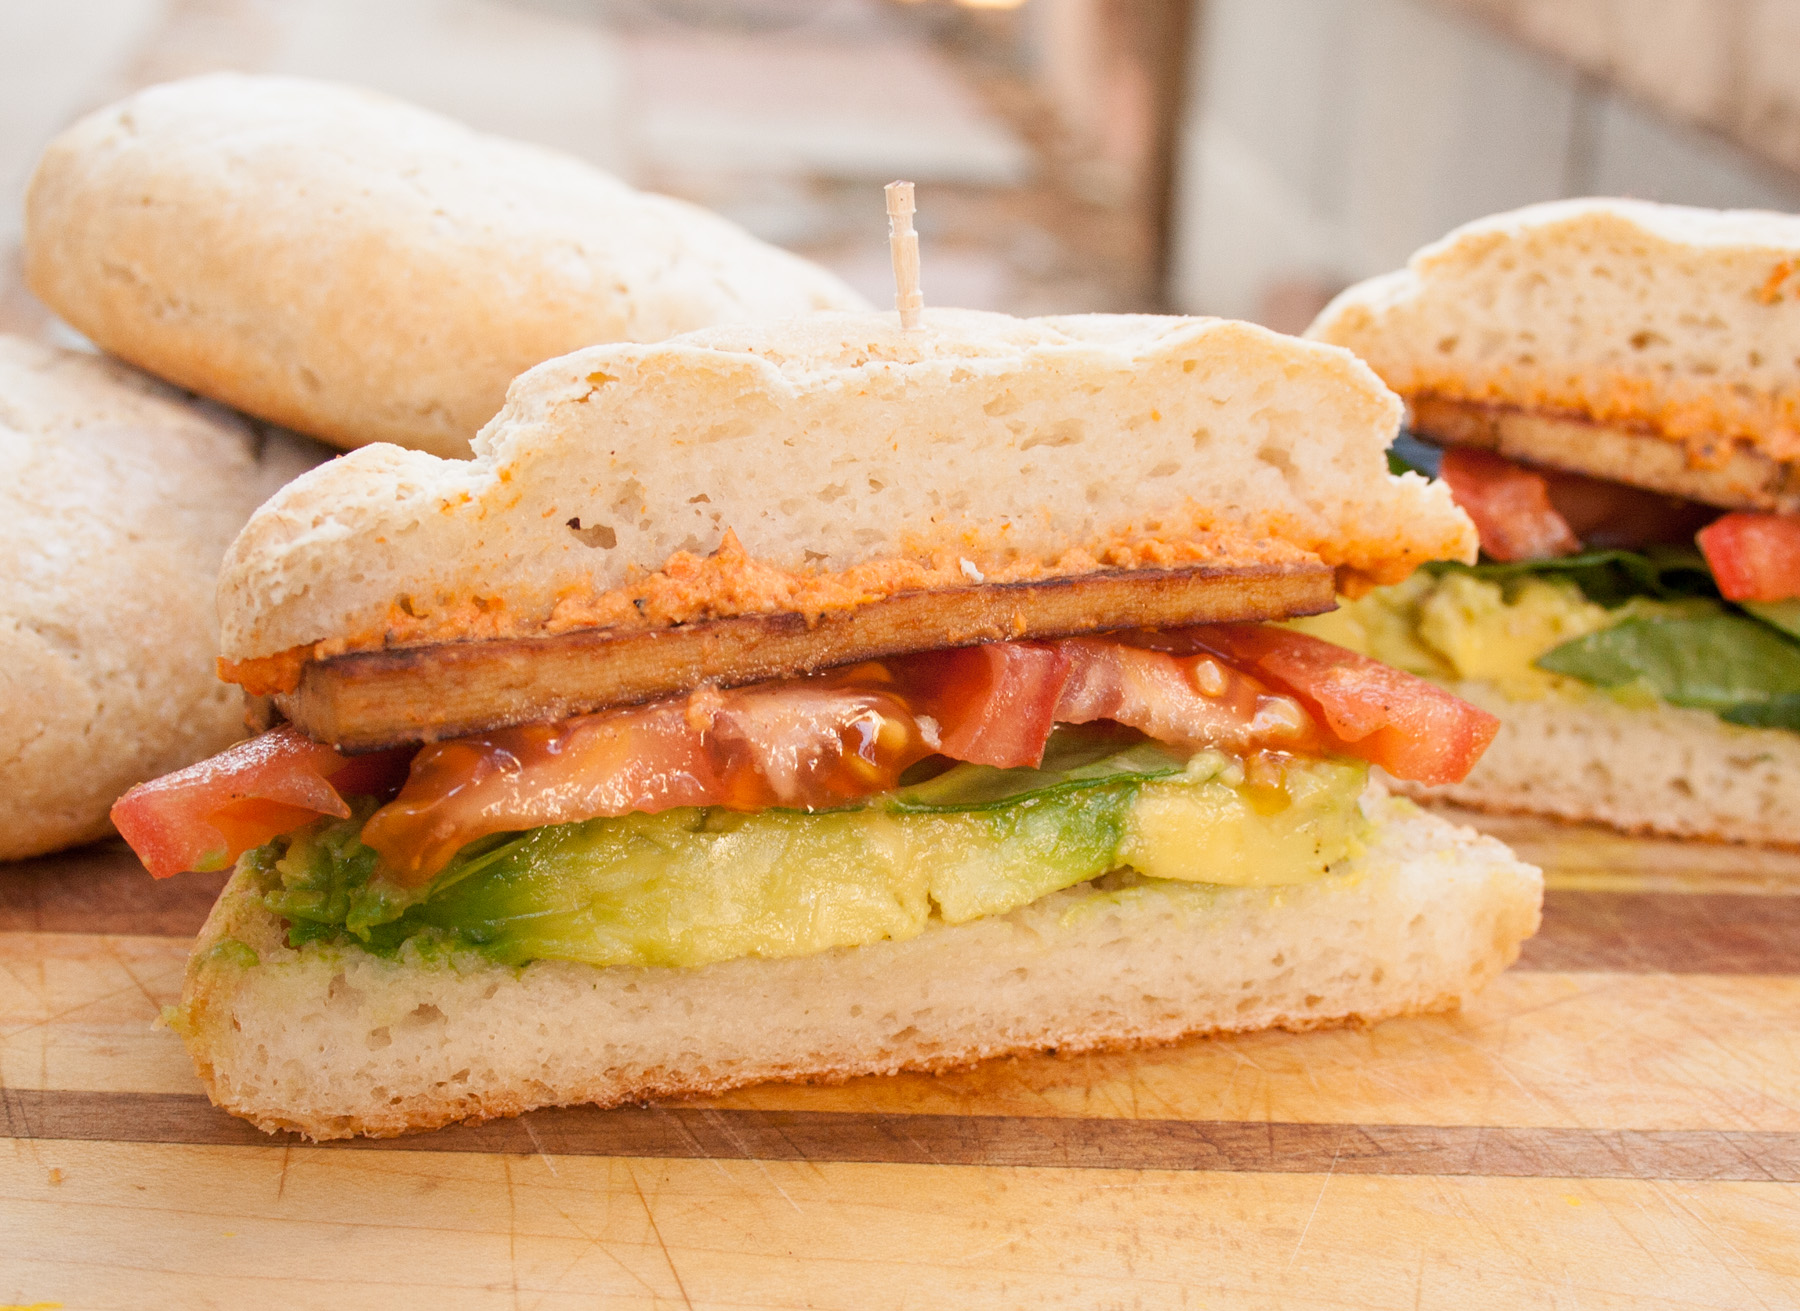 Vegan BLAT - This vegan sandwich is so good, you won't miss the bacon!